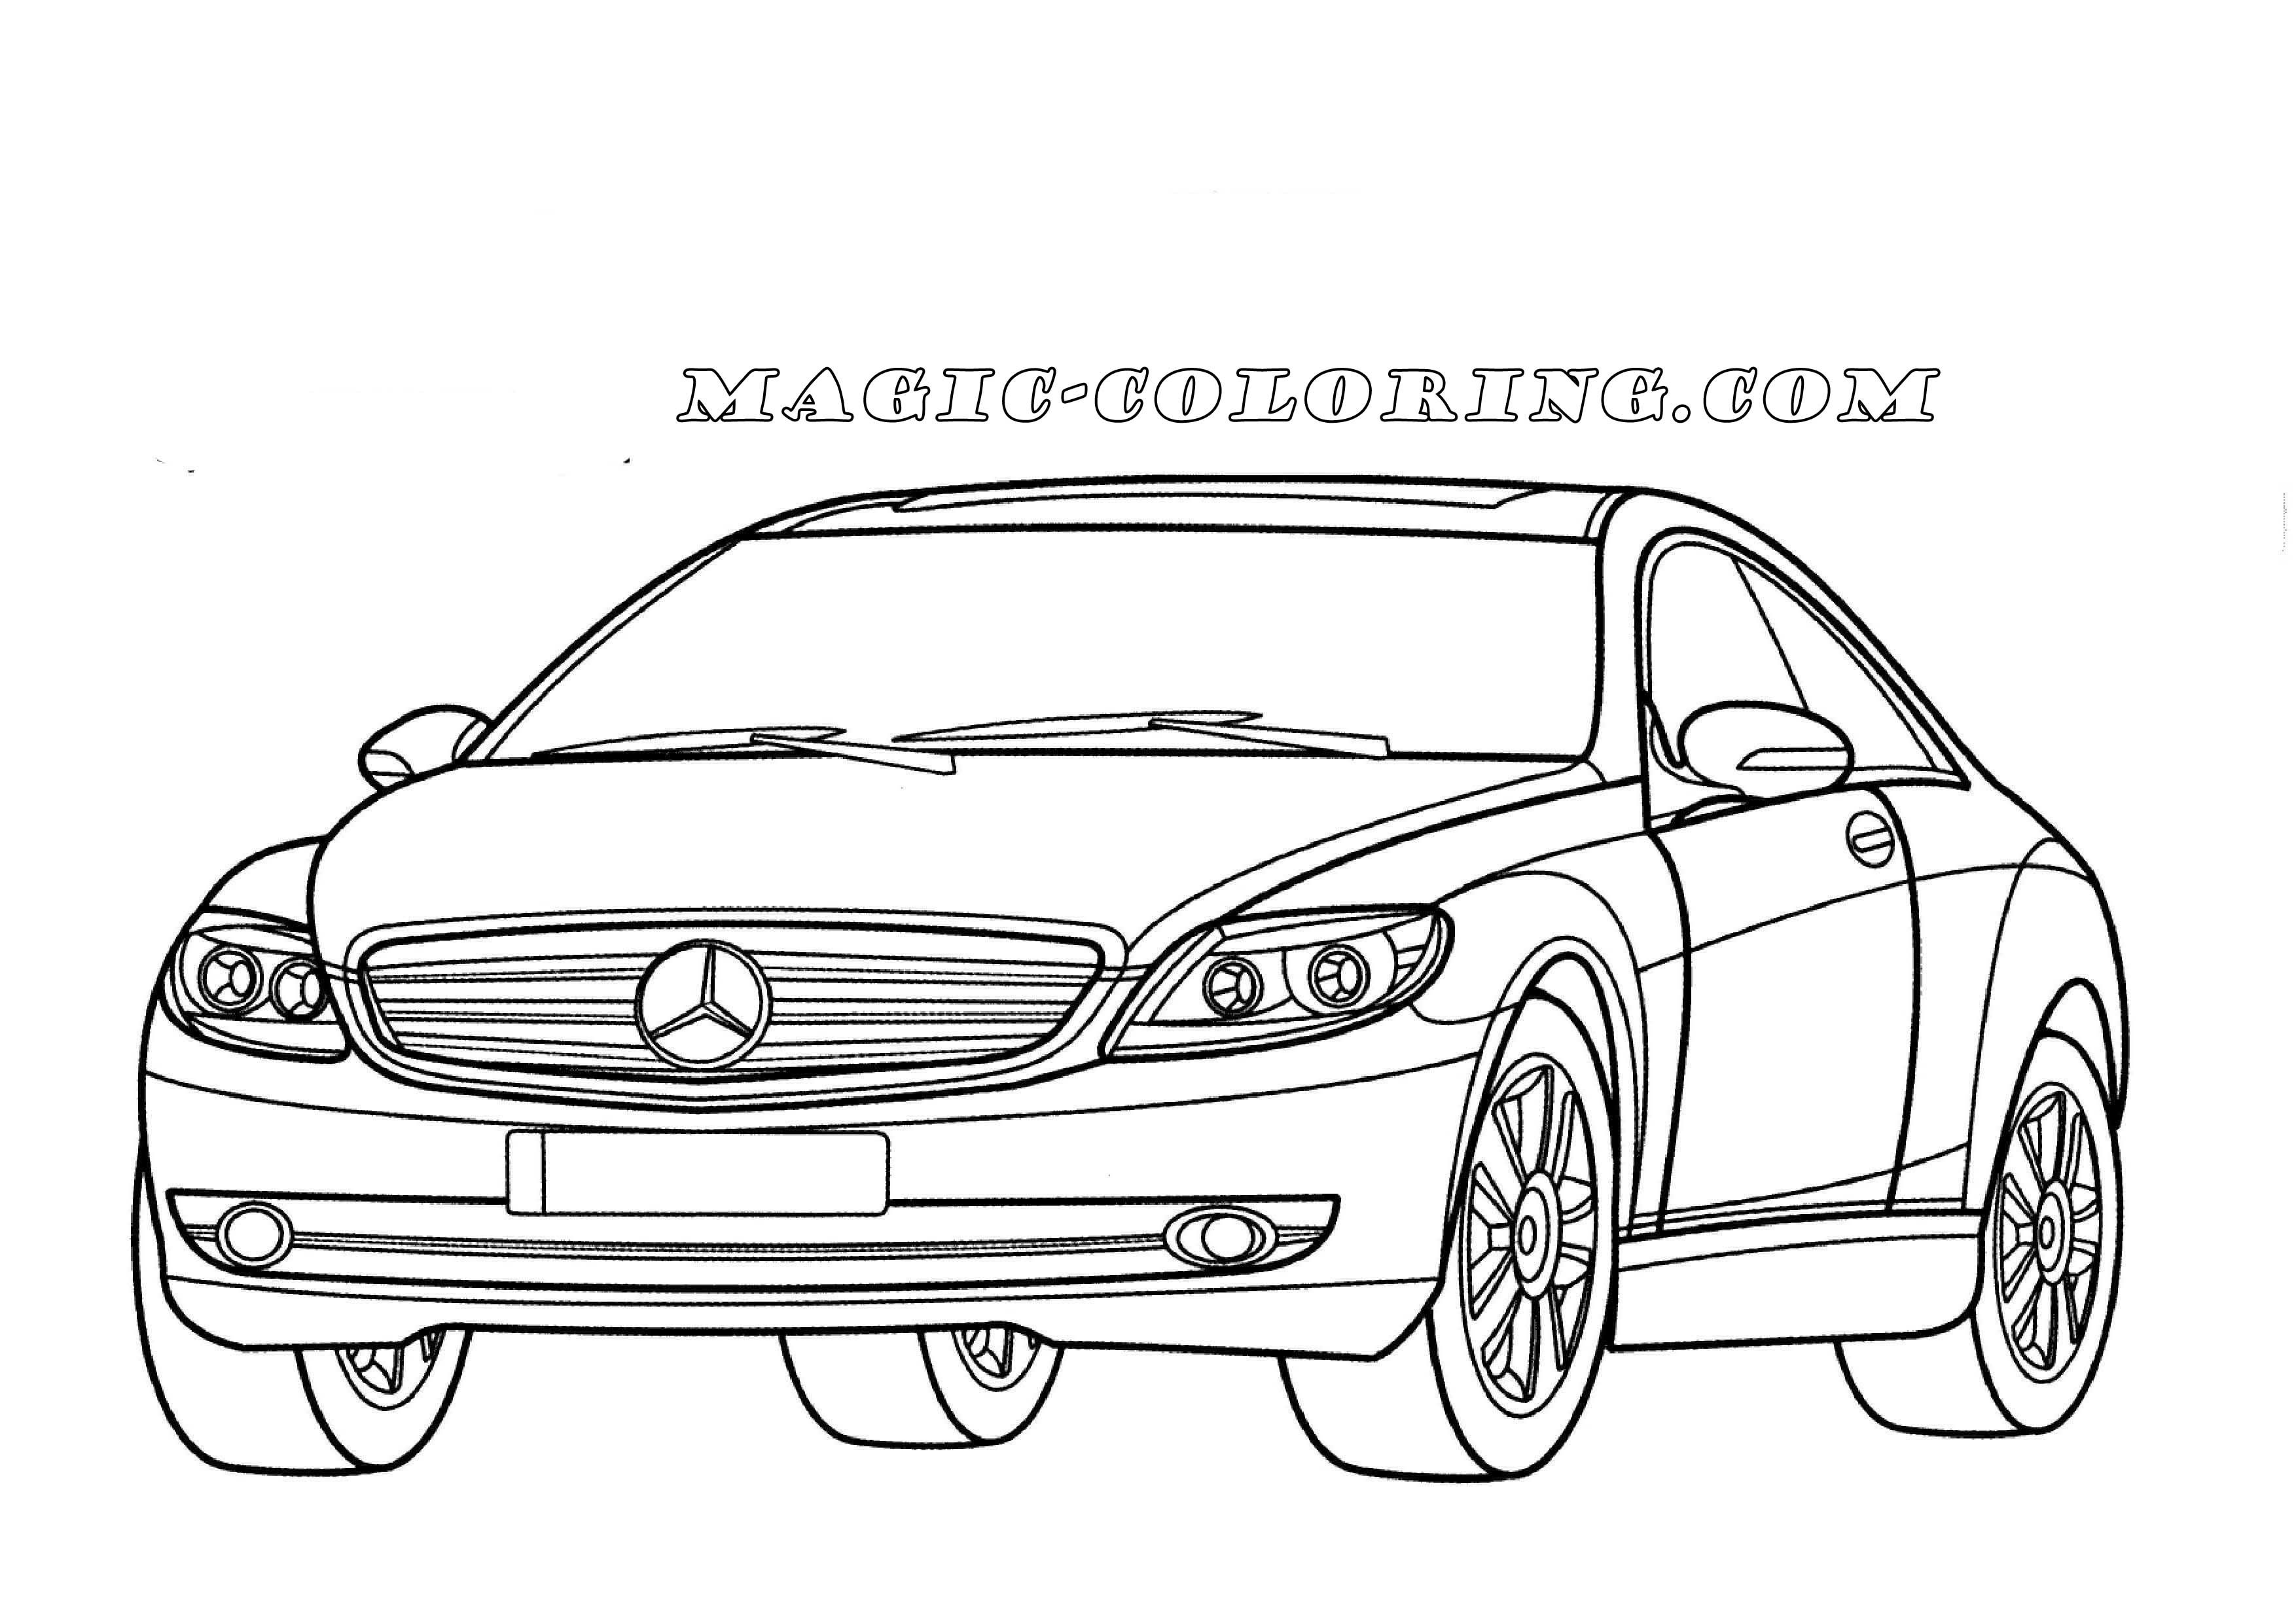 Mercedes Benz Cl Class W216 Coloring Page Mercedes Benz Cl Sports Coloring Pages Coloring Pages